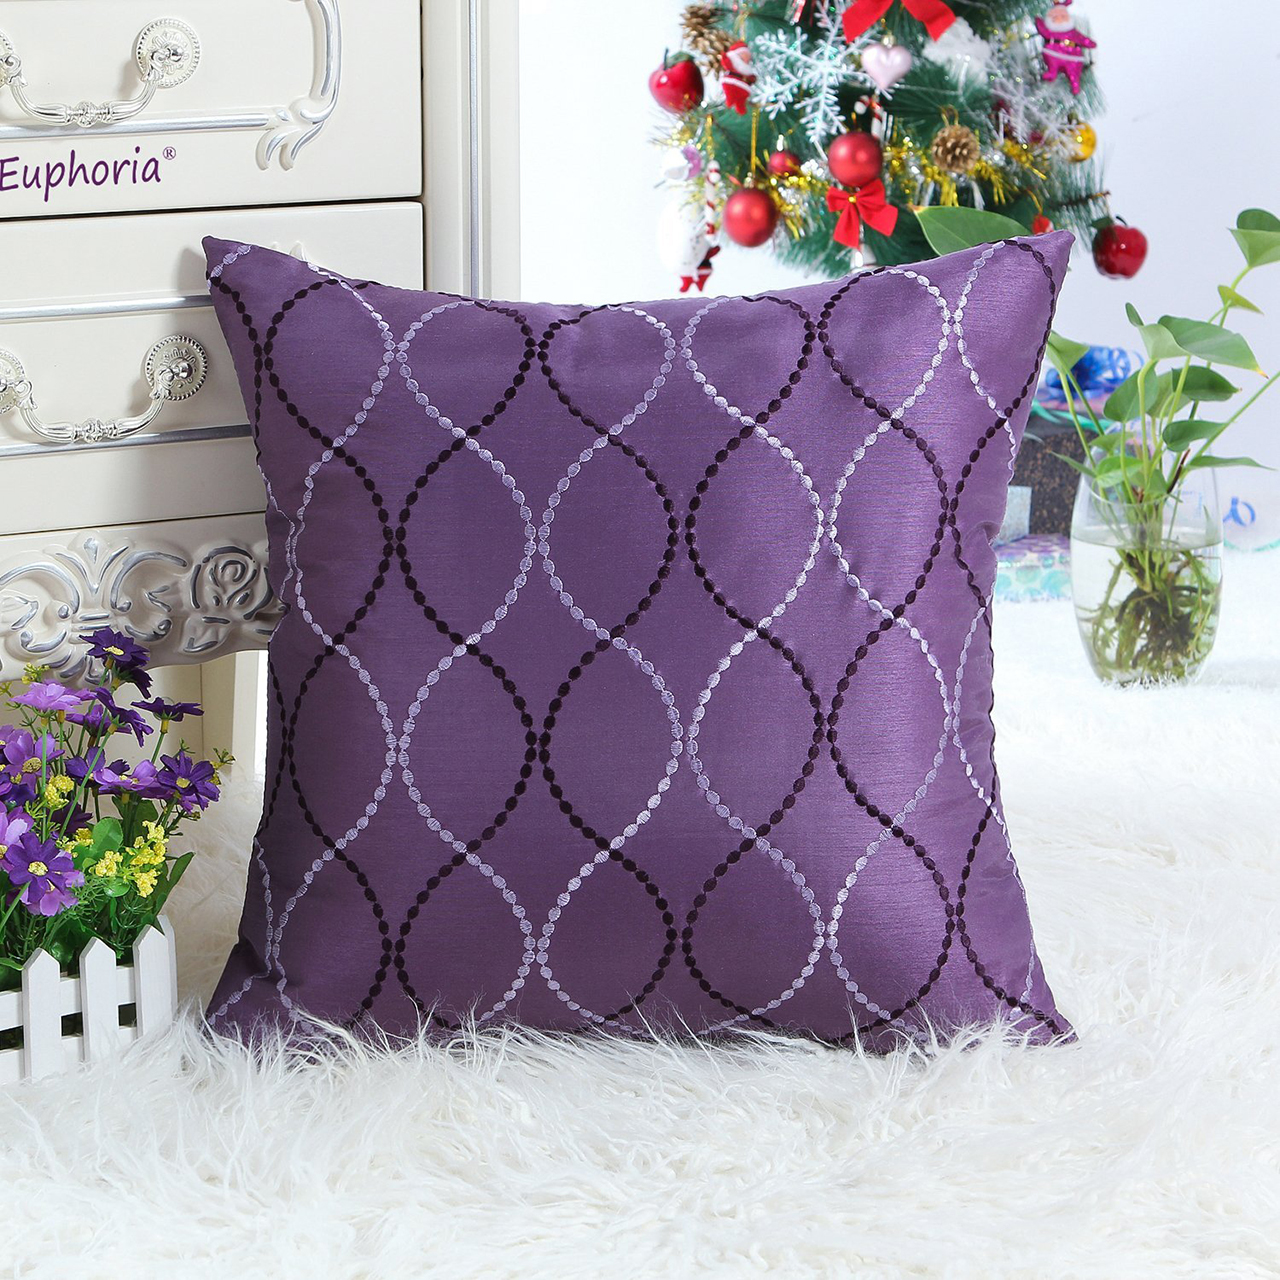 40 of the best throw pillows to buy in 2016. Black Bedroom Furniture Sets. Home Design Ideas